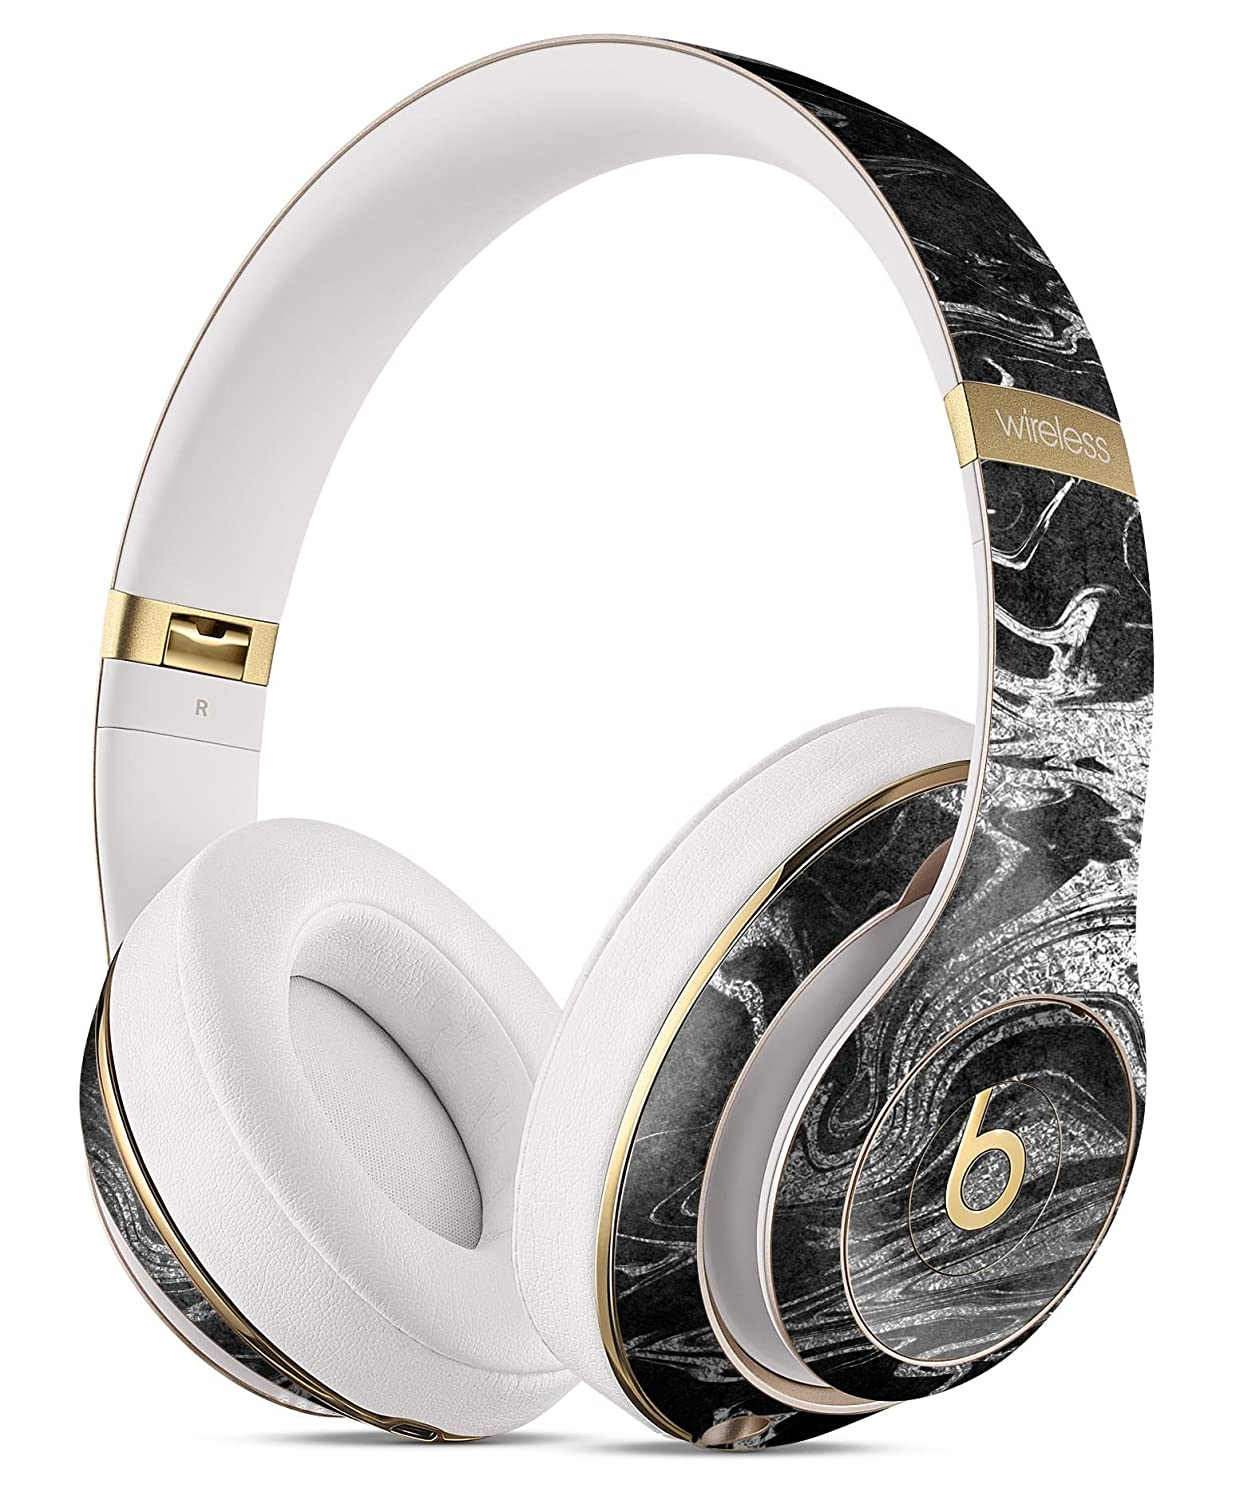 ブラック&シルバーマーブルスワールv8 Beats by Dreスキンキット/保護デカール Beats by Dre Studio 3 Wireless Black-&-Silver-Marble-Swirl-V8-v2 B077PS6YMR   Beats by Dre Studio 3 Wireless